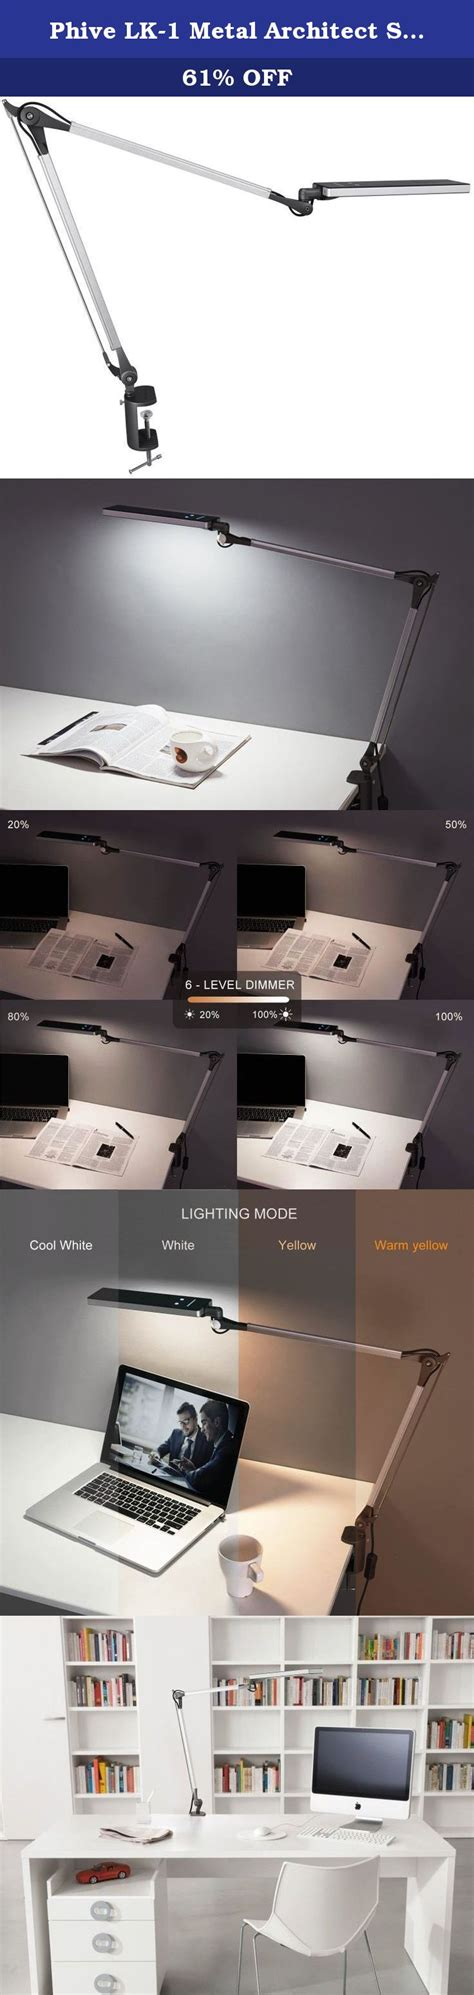 phive lk 1 architect swing arm led l phive lk architect swing arm led l